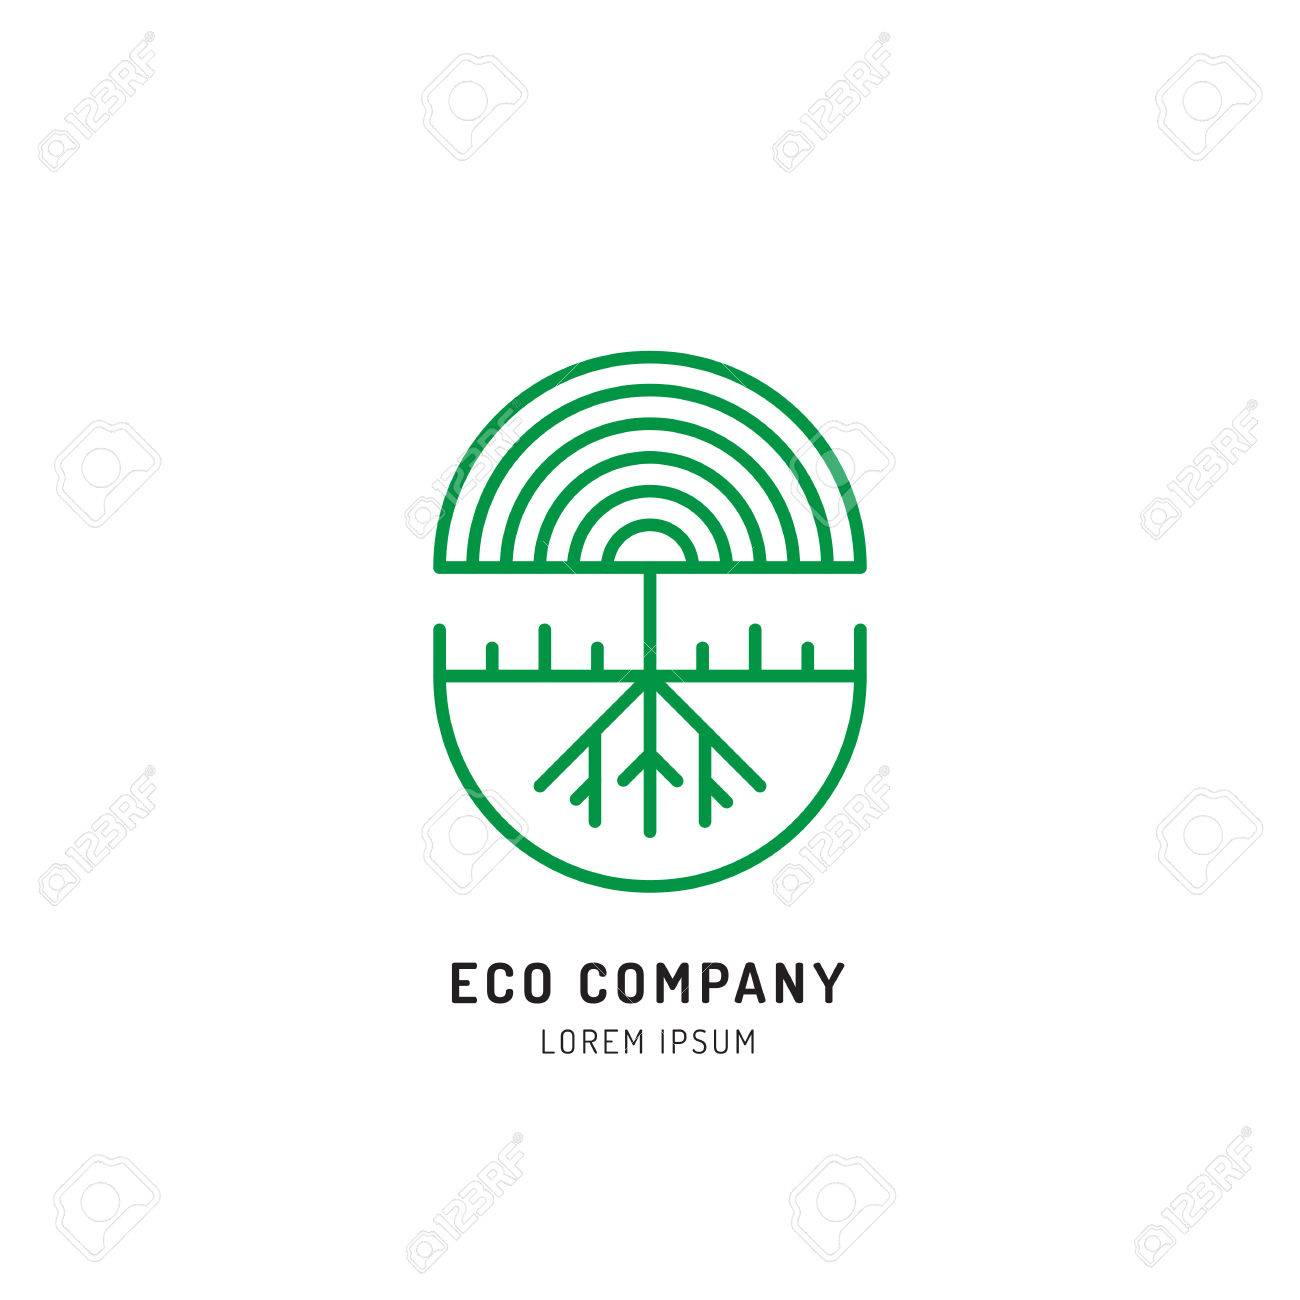 Vector Abstract Green Tree Logo Design Templates Outline Emblems Royalty Free Cliparts Vectors And Stock Illustration Image 82082483